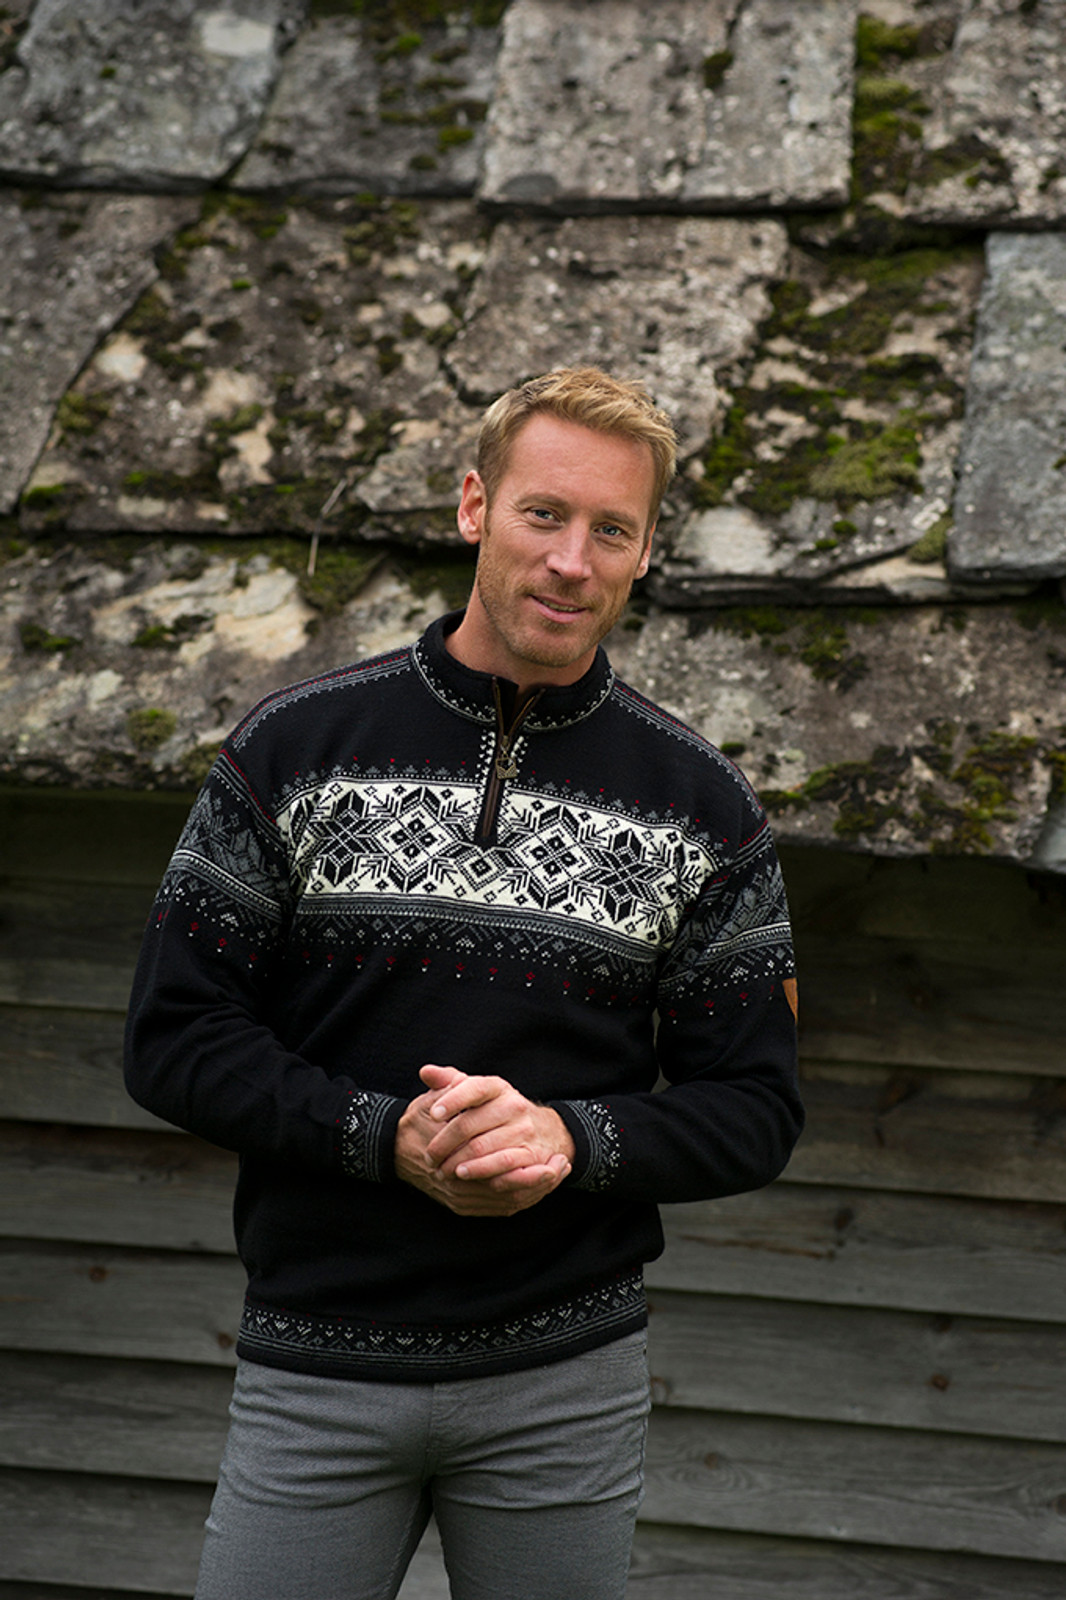 Man wearing Dale of Norway's Blyfjell Unisex Sweater in Black/Off White/Smoke/Raspberry, 91291-F